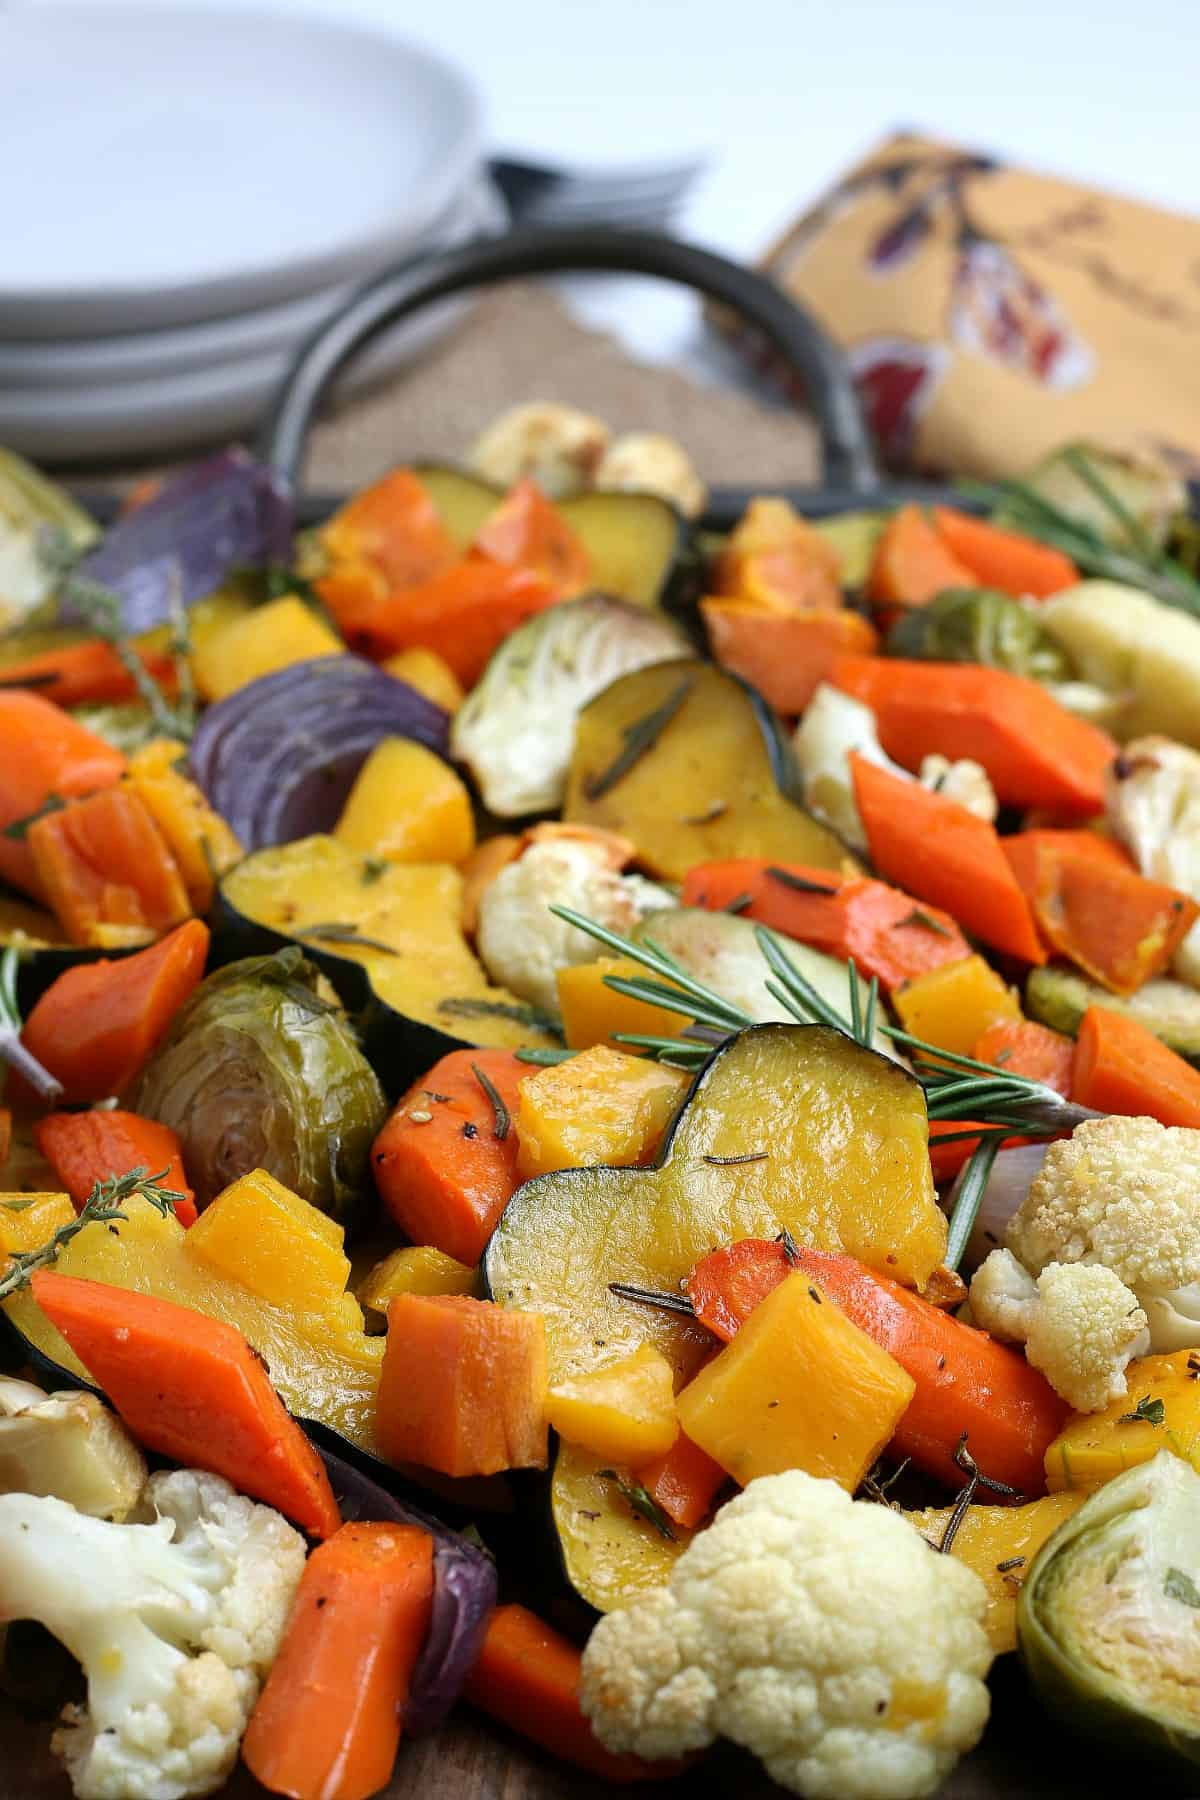 Tilted pan full of colorful roasted veggies with herbs.